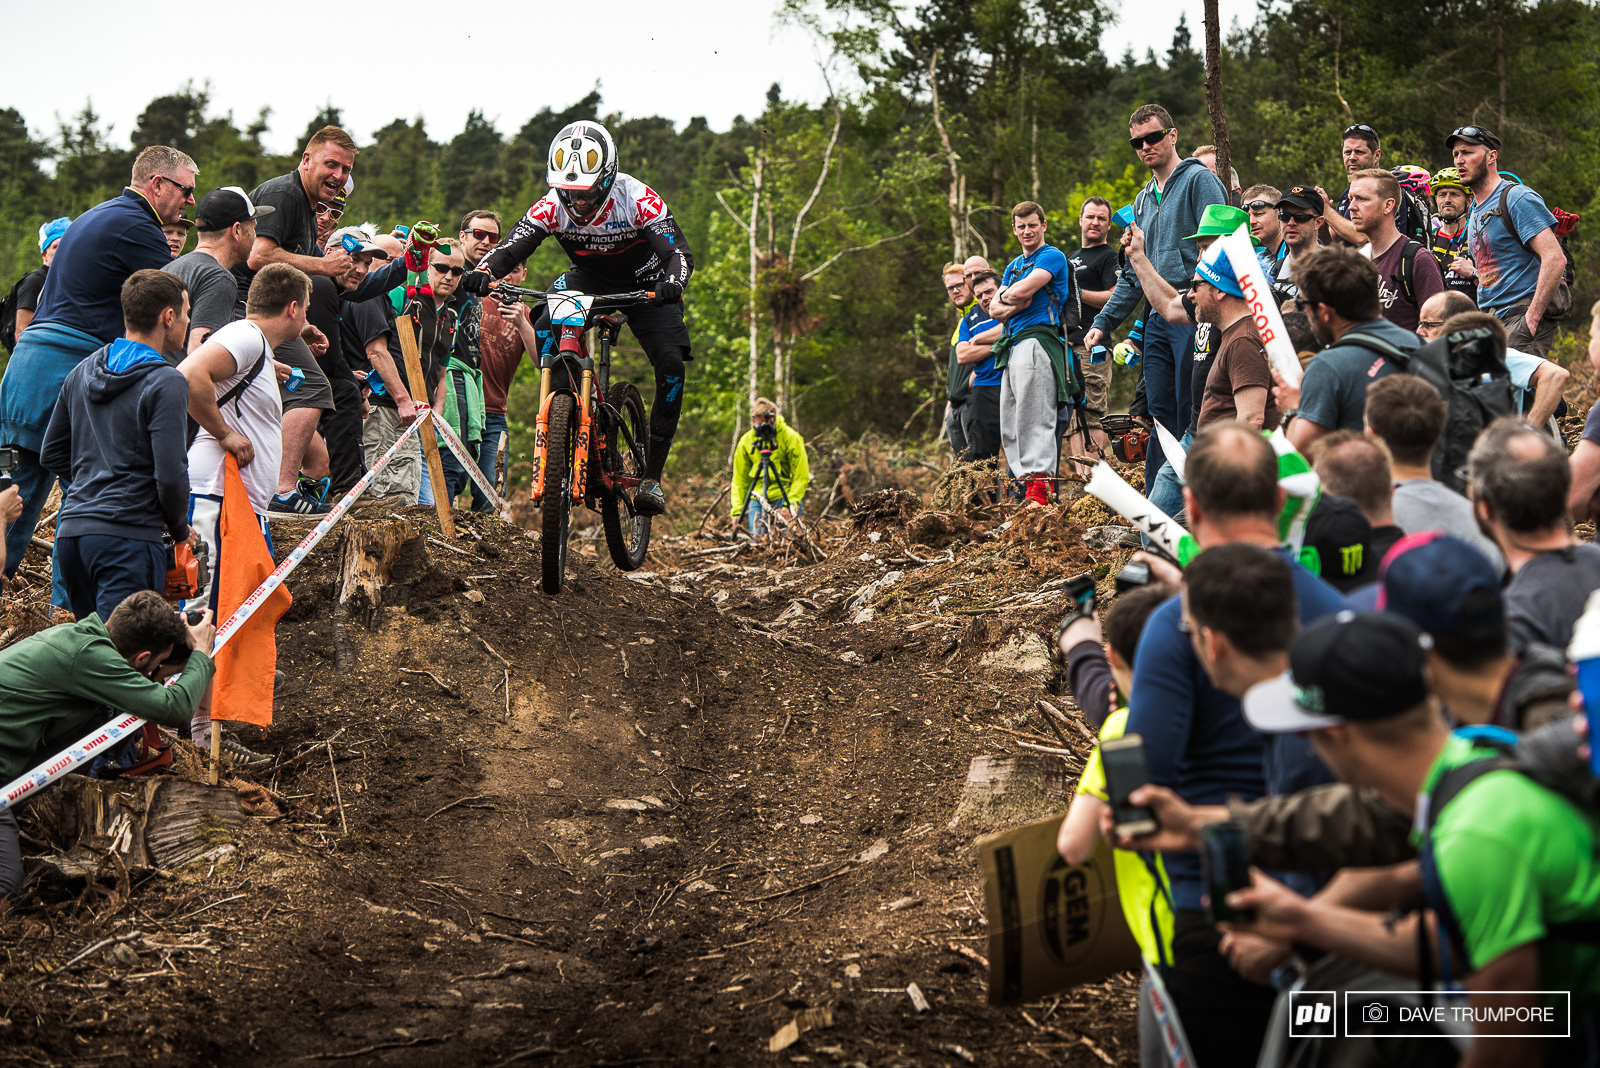 Florian Nicolai storms down the Irish hillside packed to capacity with race fans.